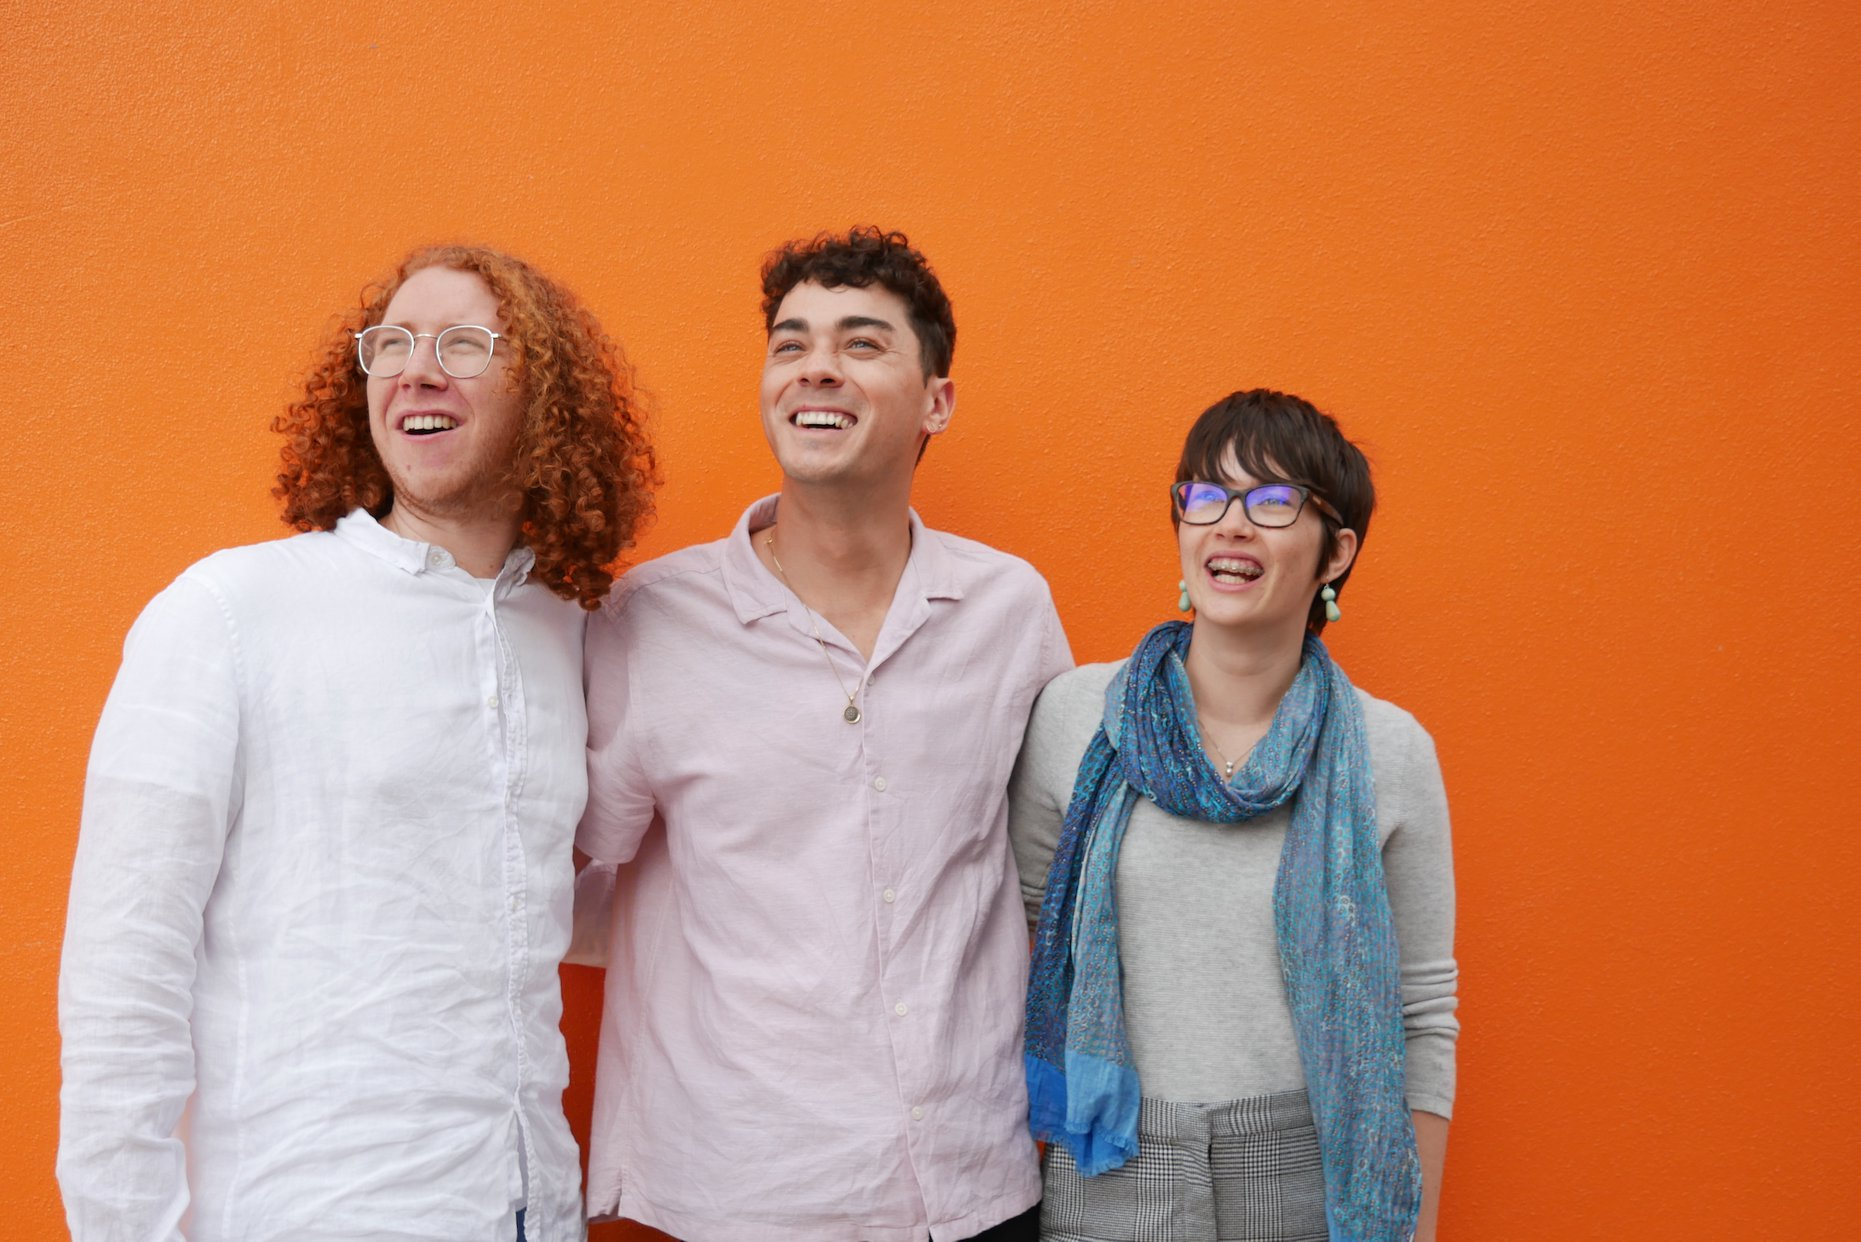 A photograph of three people embracing and smiling. They are all looking past the camera at something to the left. They stand in front of a bright orange wall. The peopple are: Chris Leopardi, Jay Anderson, and Luisa Mitchell